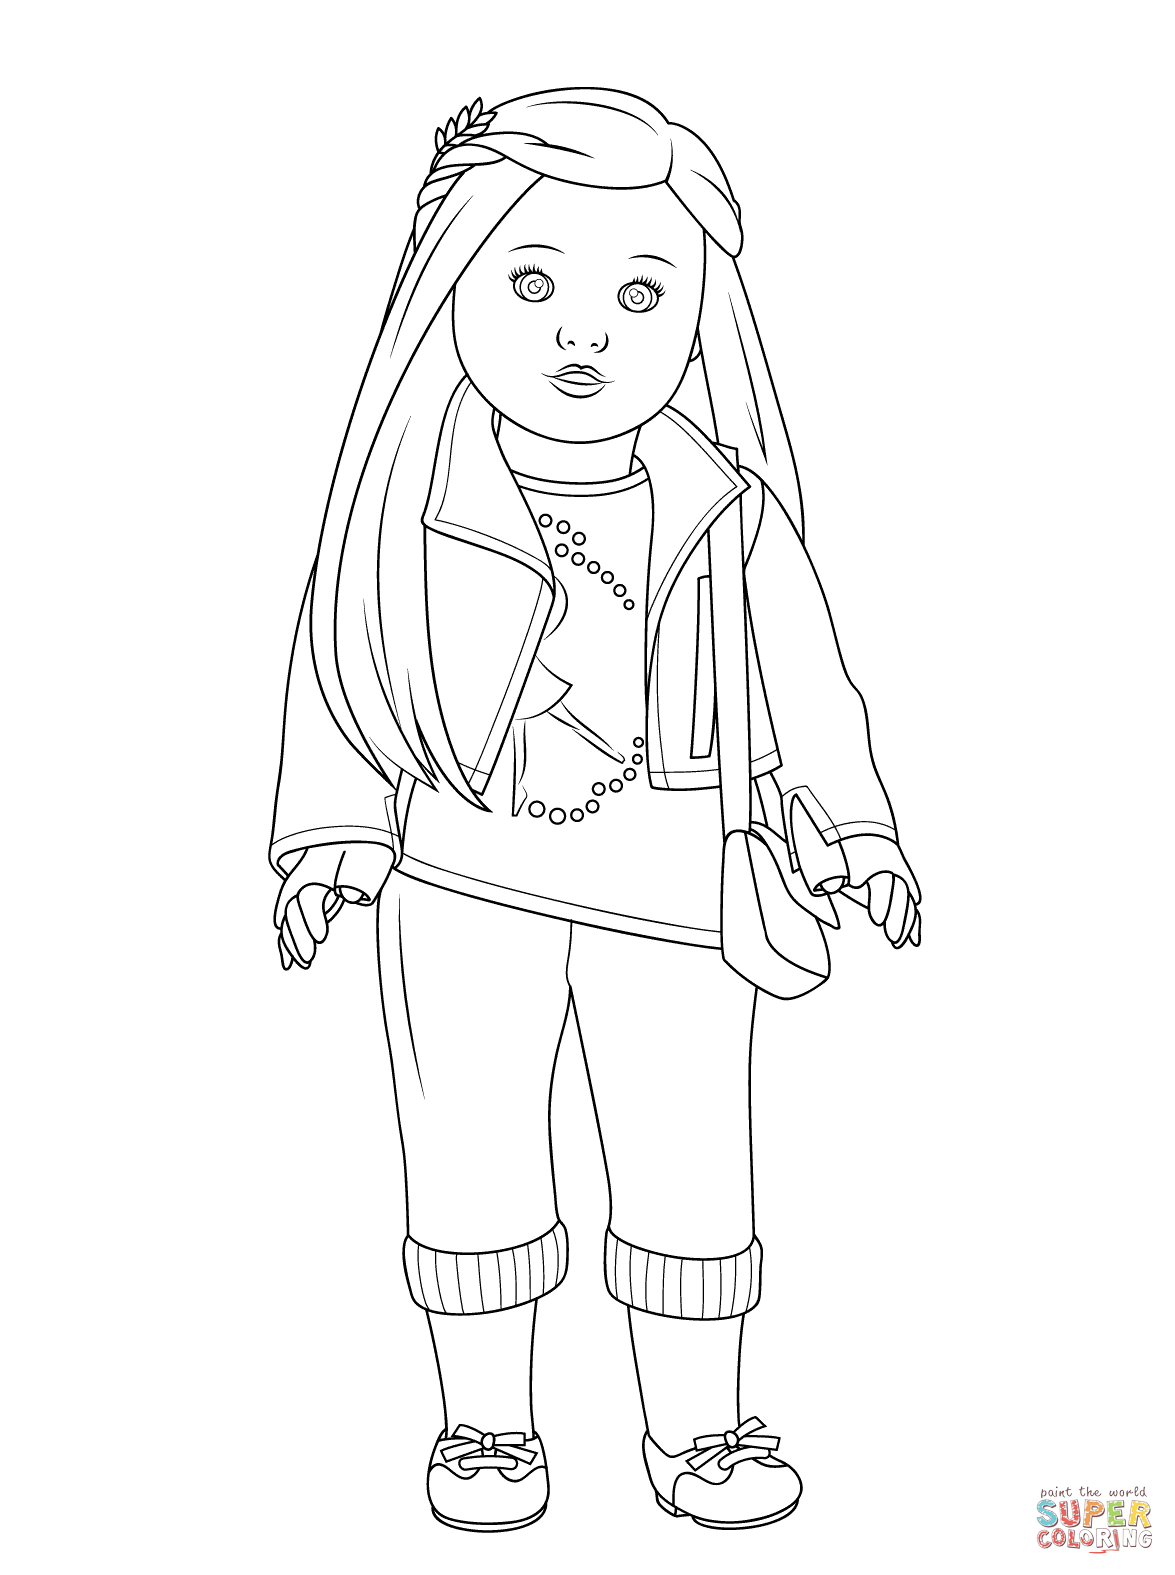 Baby Girl Coloring Pages To Print - Coloring Home | 1575x1175